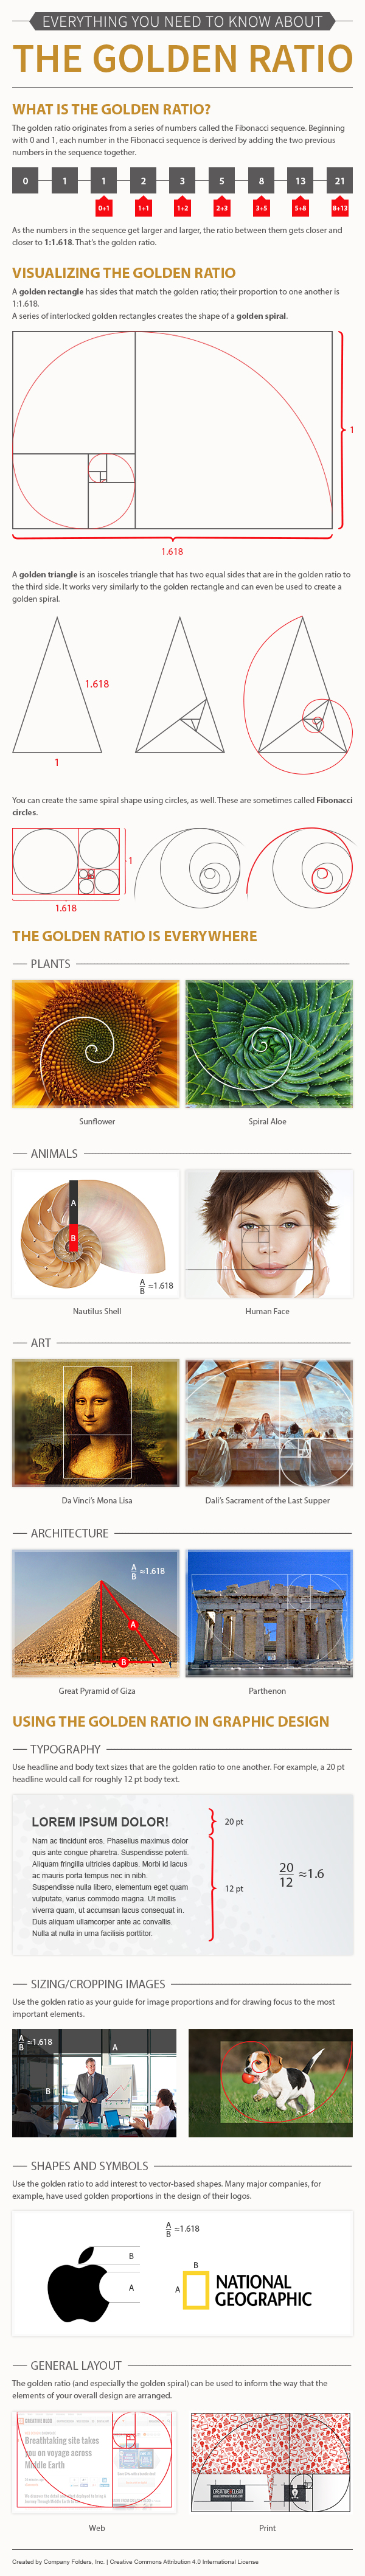 golden-ratio-graphic-design